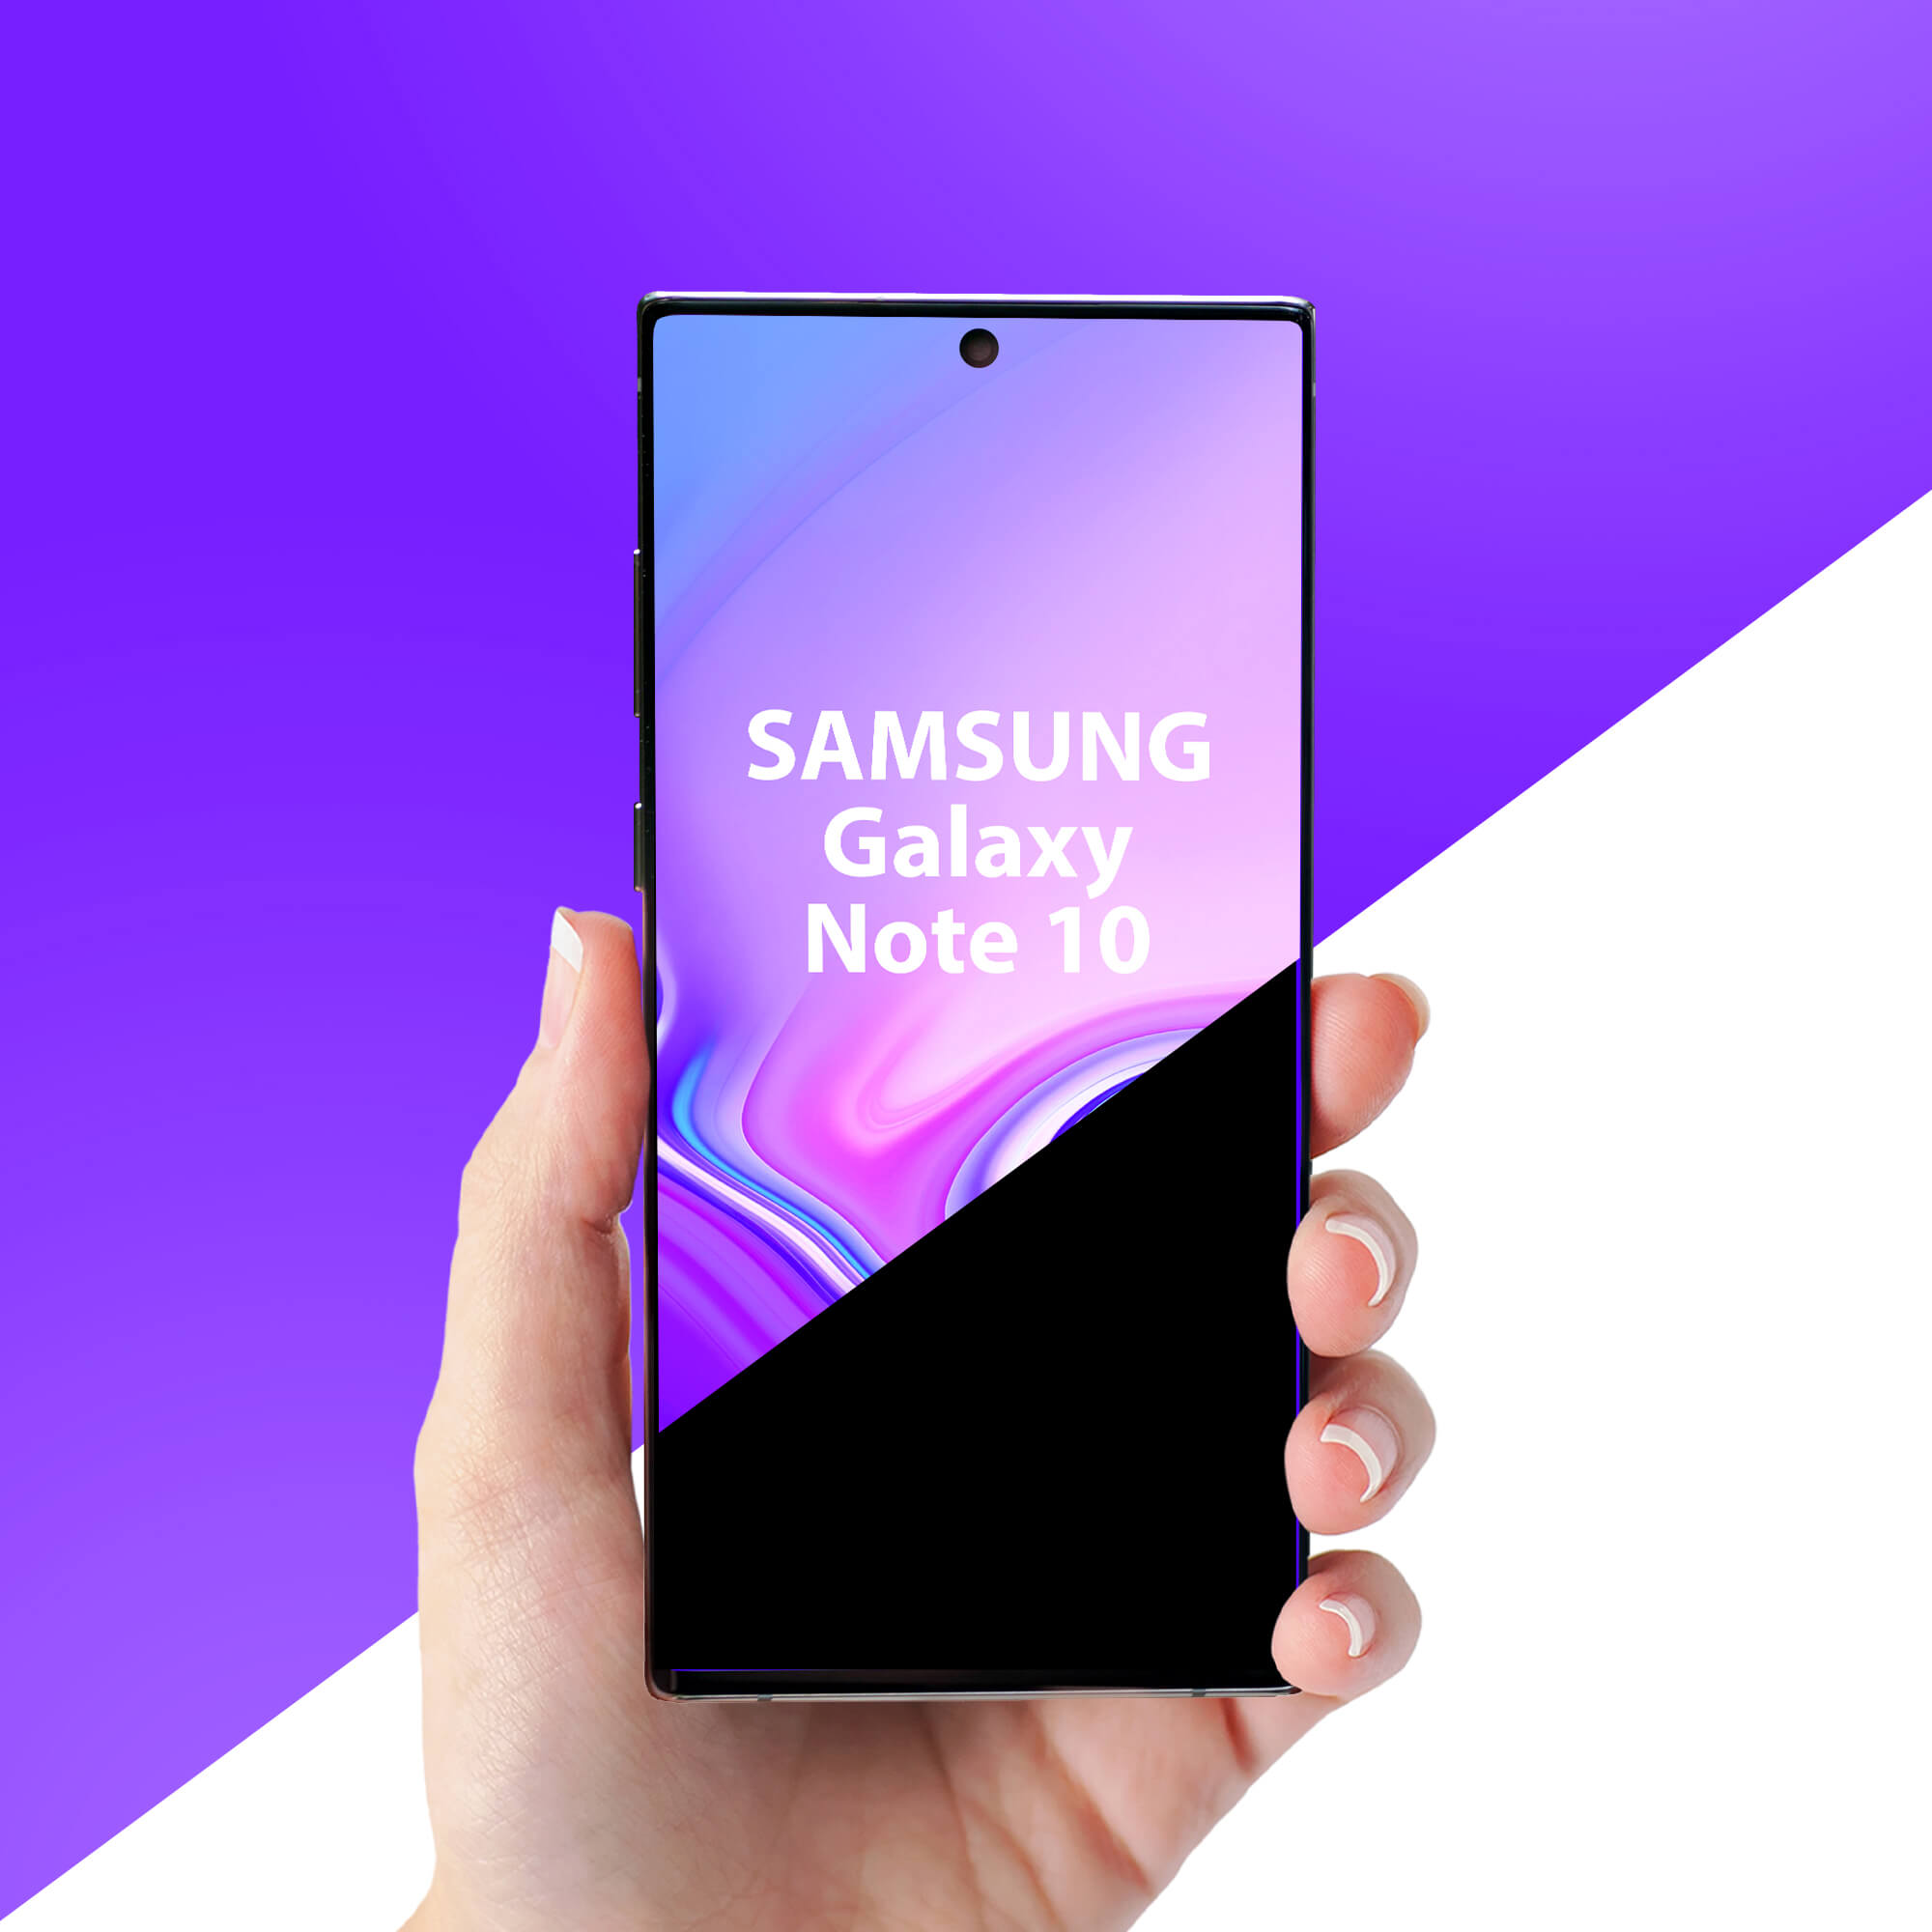 Editable Free Galaxy Note 10 in Hand Mockup PSD Template